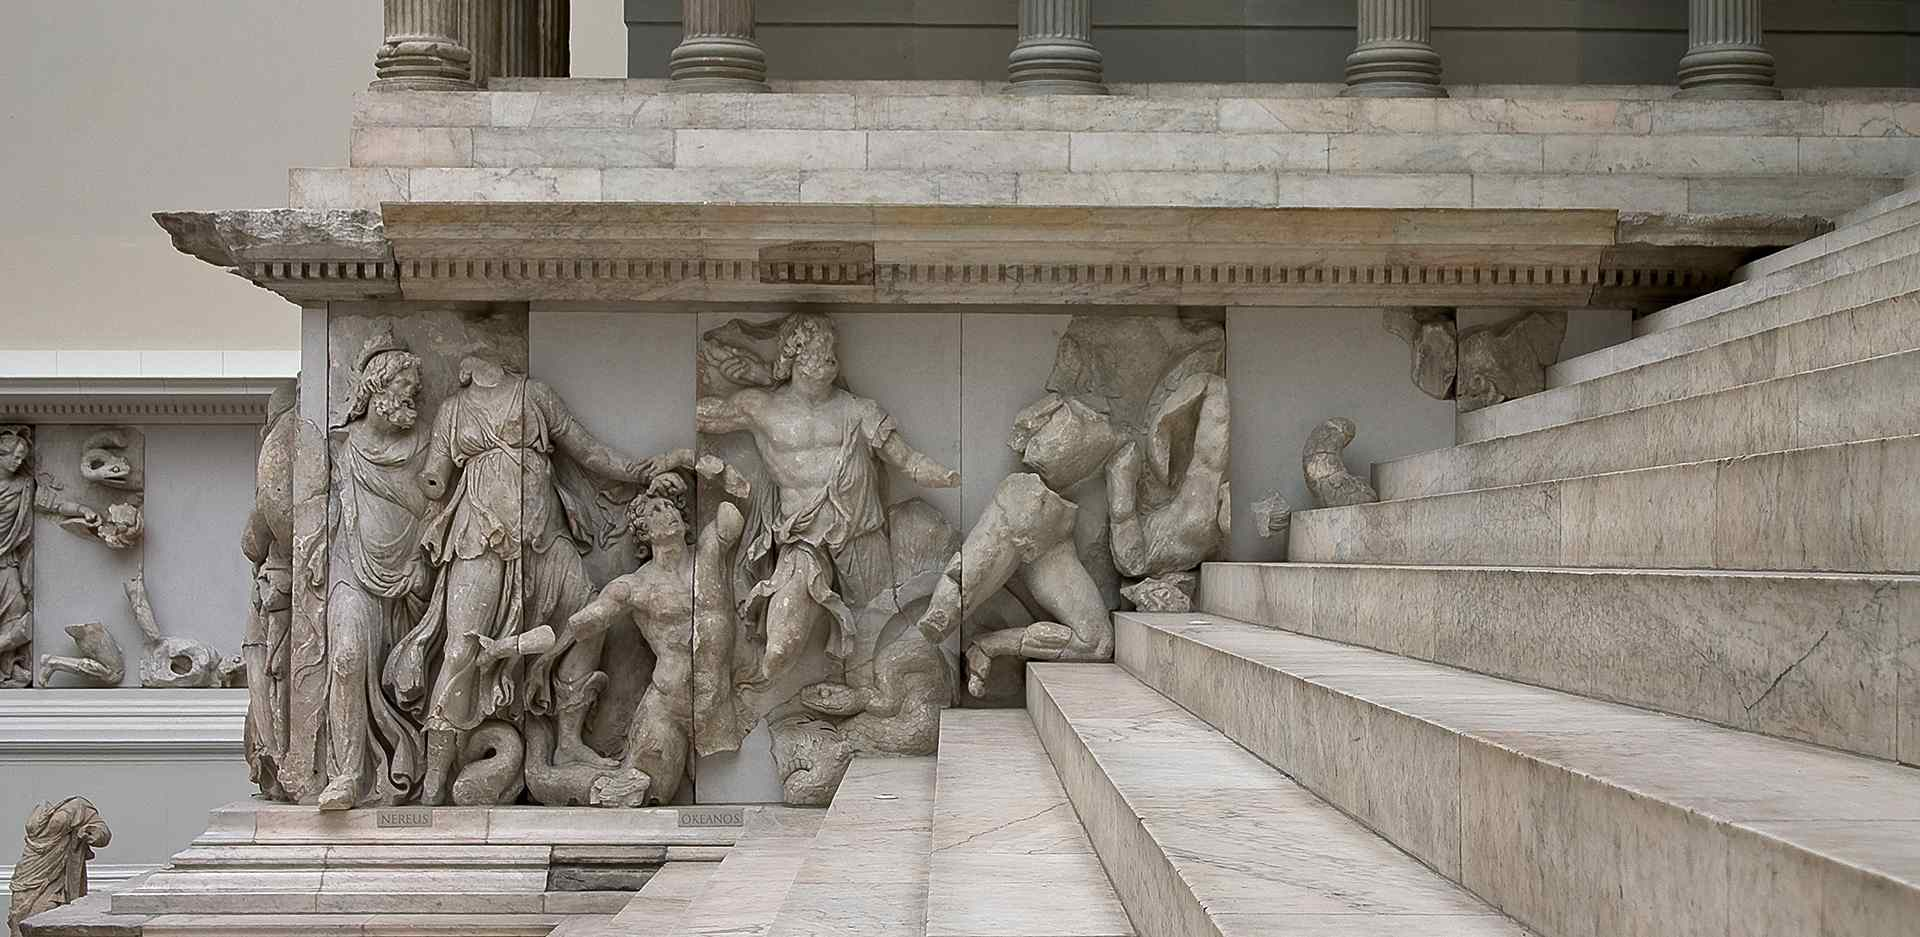 Pergamon Altar, view of the Gigantomachy frieze / north risalit. A complete and richly detailed 3D model of the Pergamon Altar created as part of a digital scanning project is now available online.